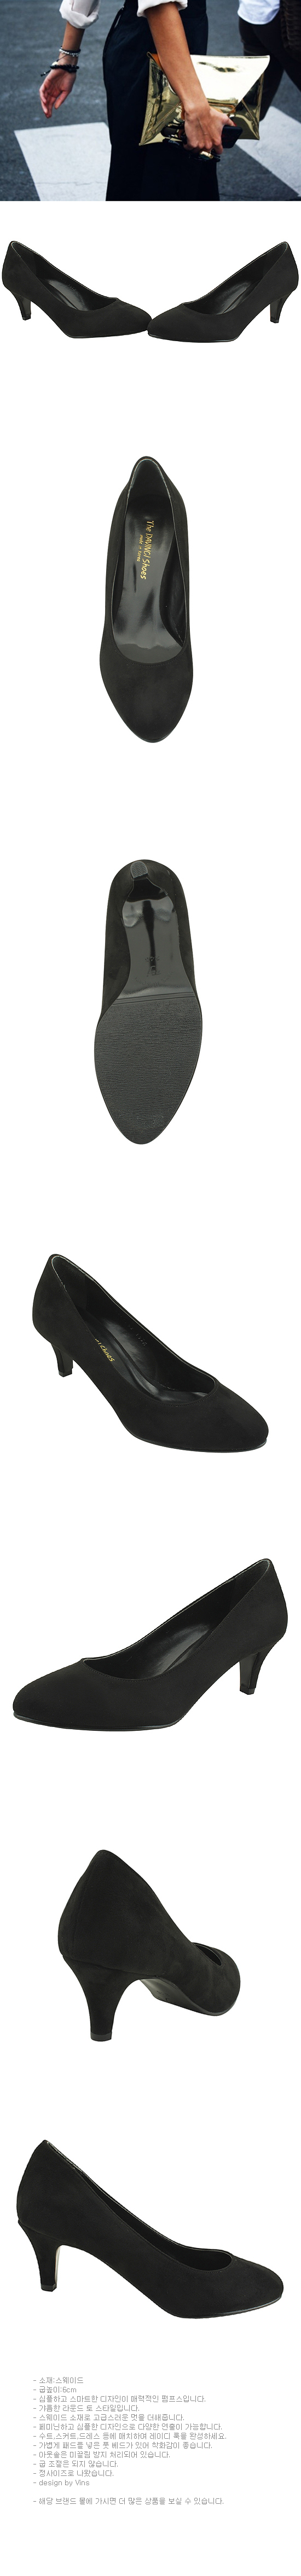 Basic middle heel 6cm black